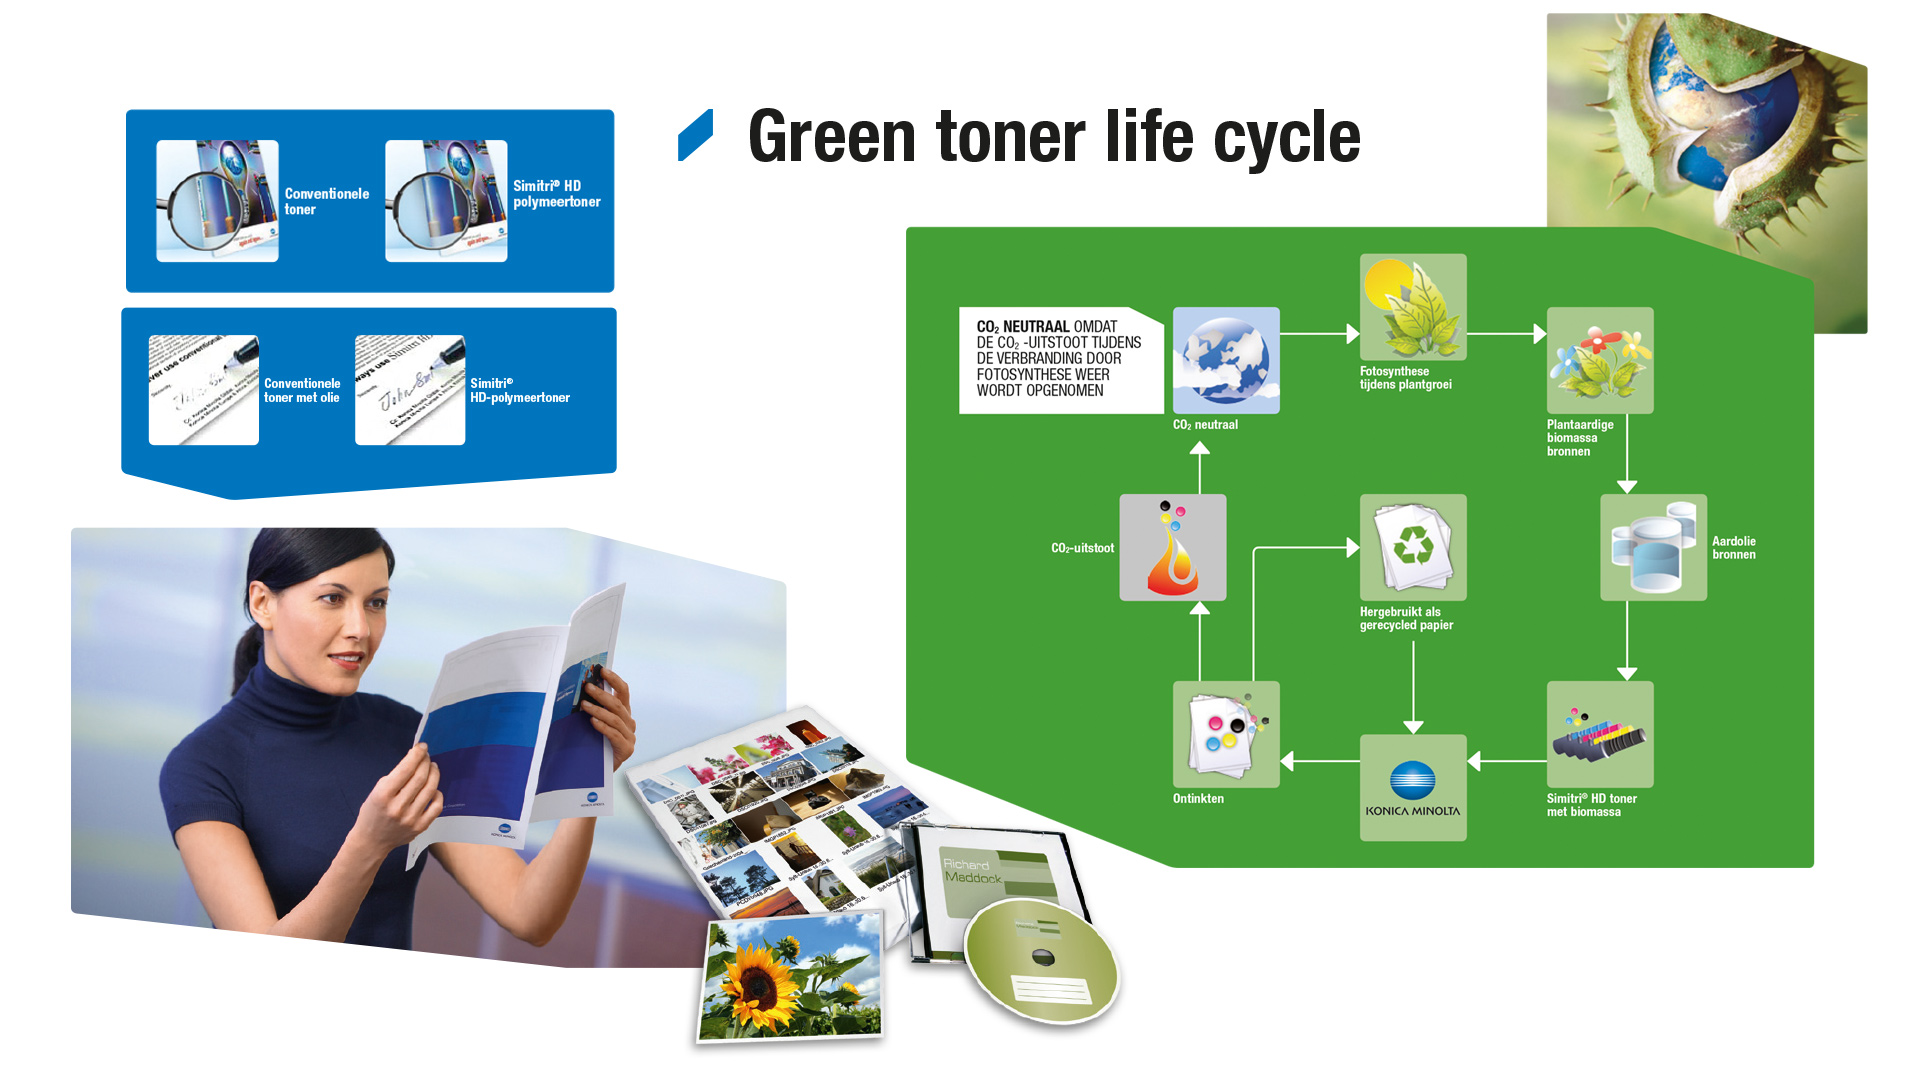 Green toner life cycle